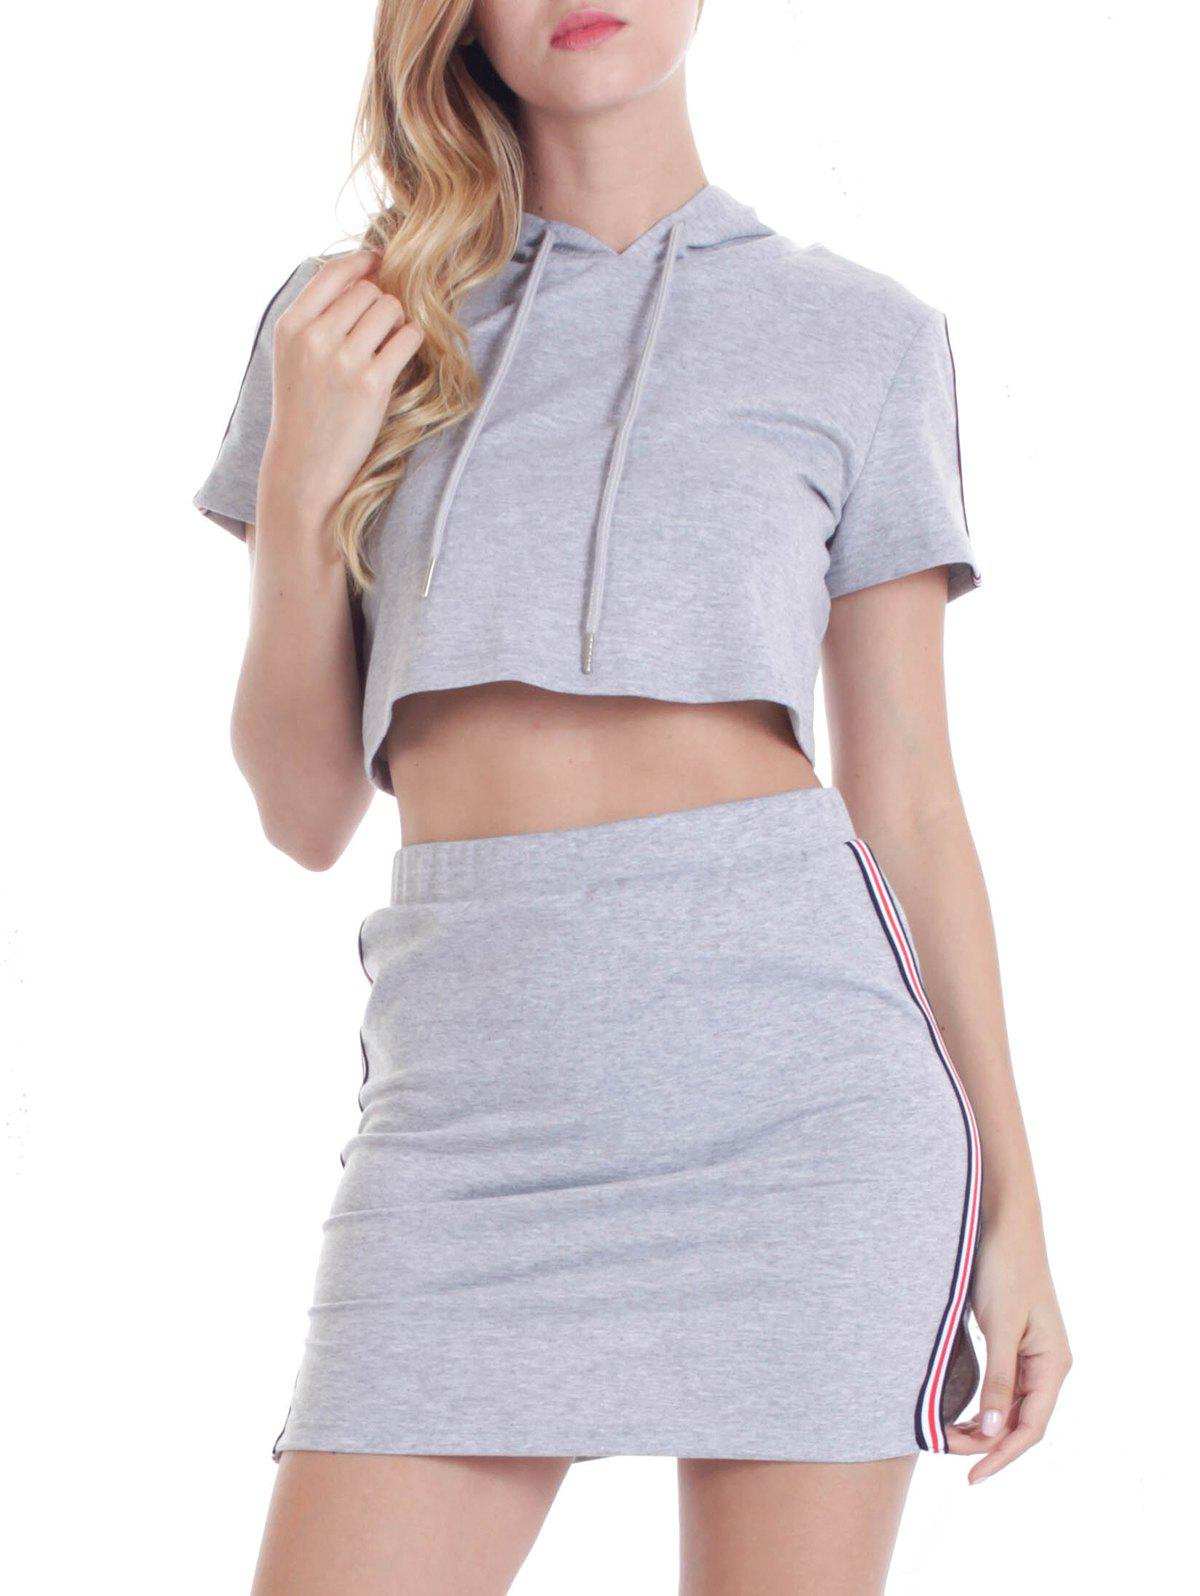 Shops Hooded Striped Top with Mini Skirt